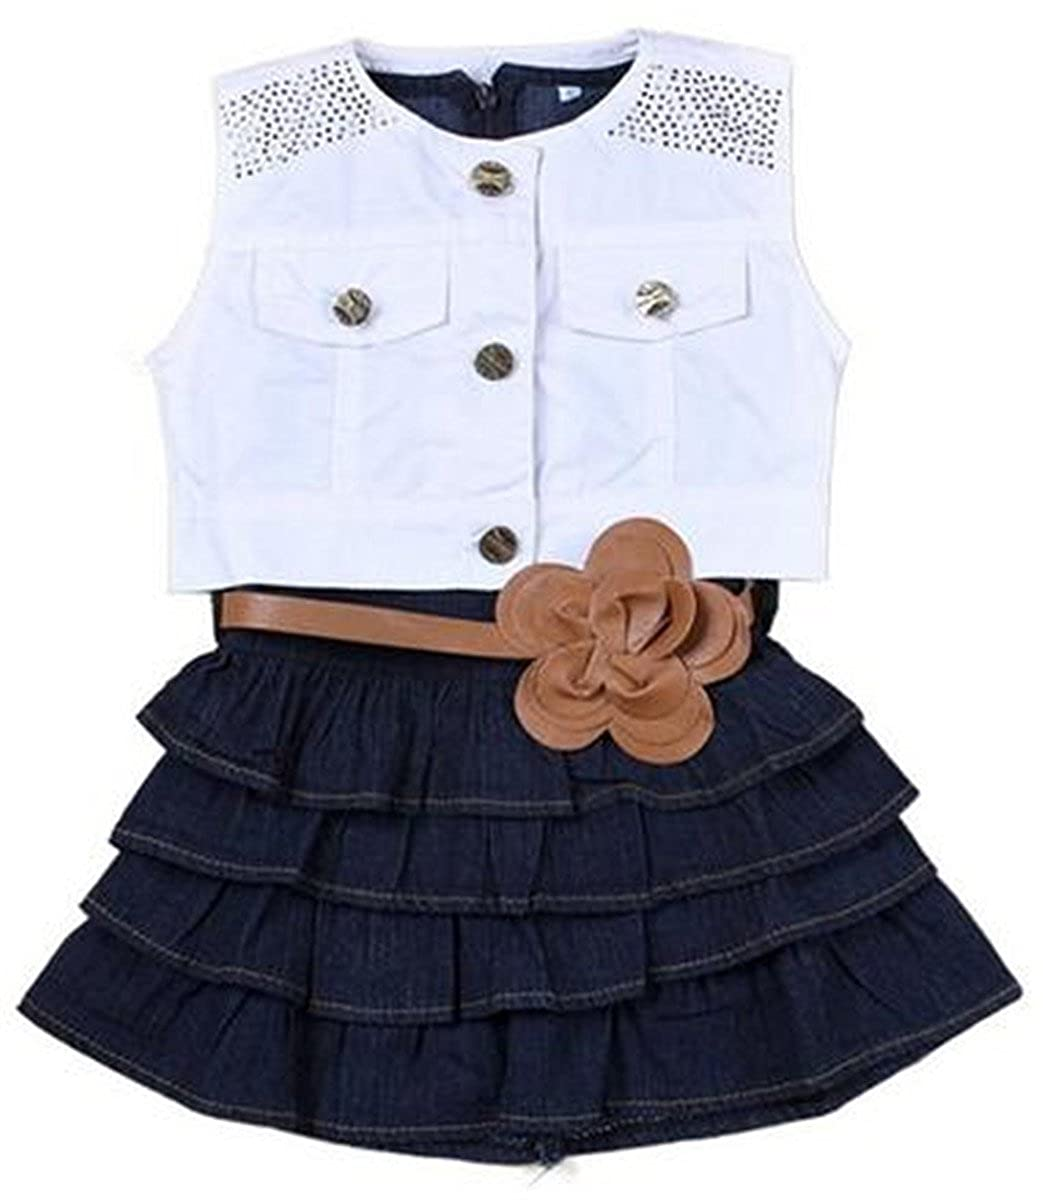 Happy Little Girls' 2Piece White Vest and Denim Cake Dress with Belt Set 3T blue